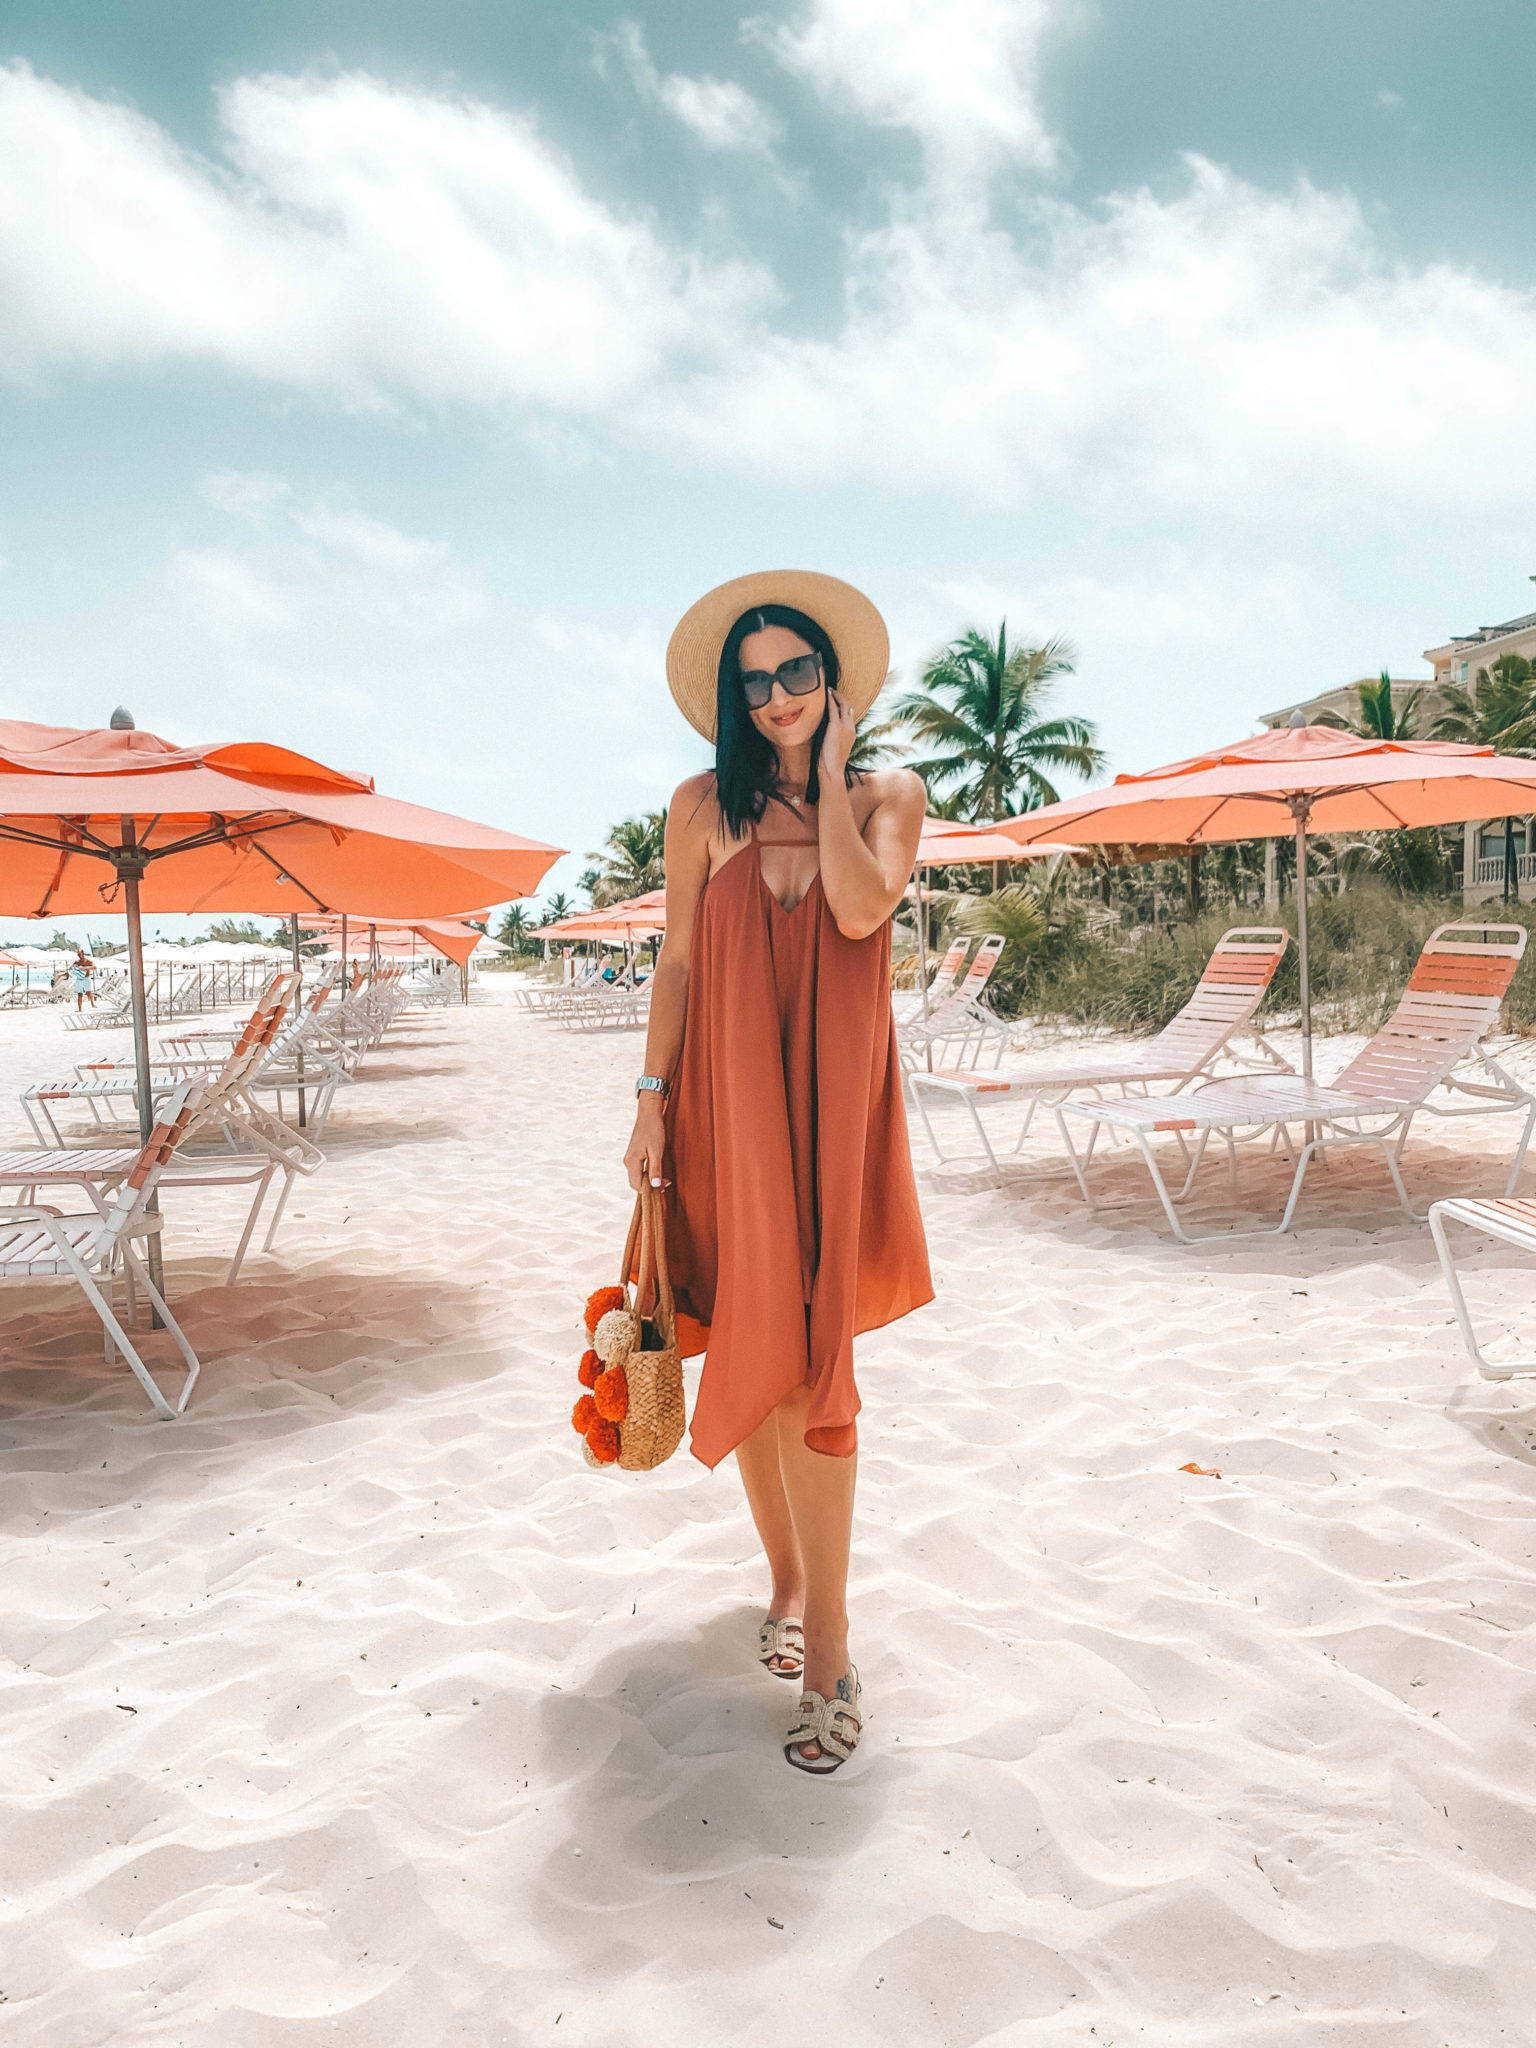 Amaryllis Apparel Abroad Turks & Caicos Summer Try-On by popular Austin fashion blog, Dressed to Kill: image of a woman standing outside on a beach in Turks and Caicos and wearing an Amaryllis Apparel rust colored Breezy Day Dress.